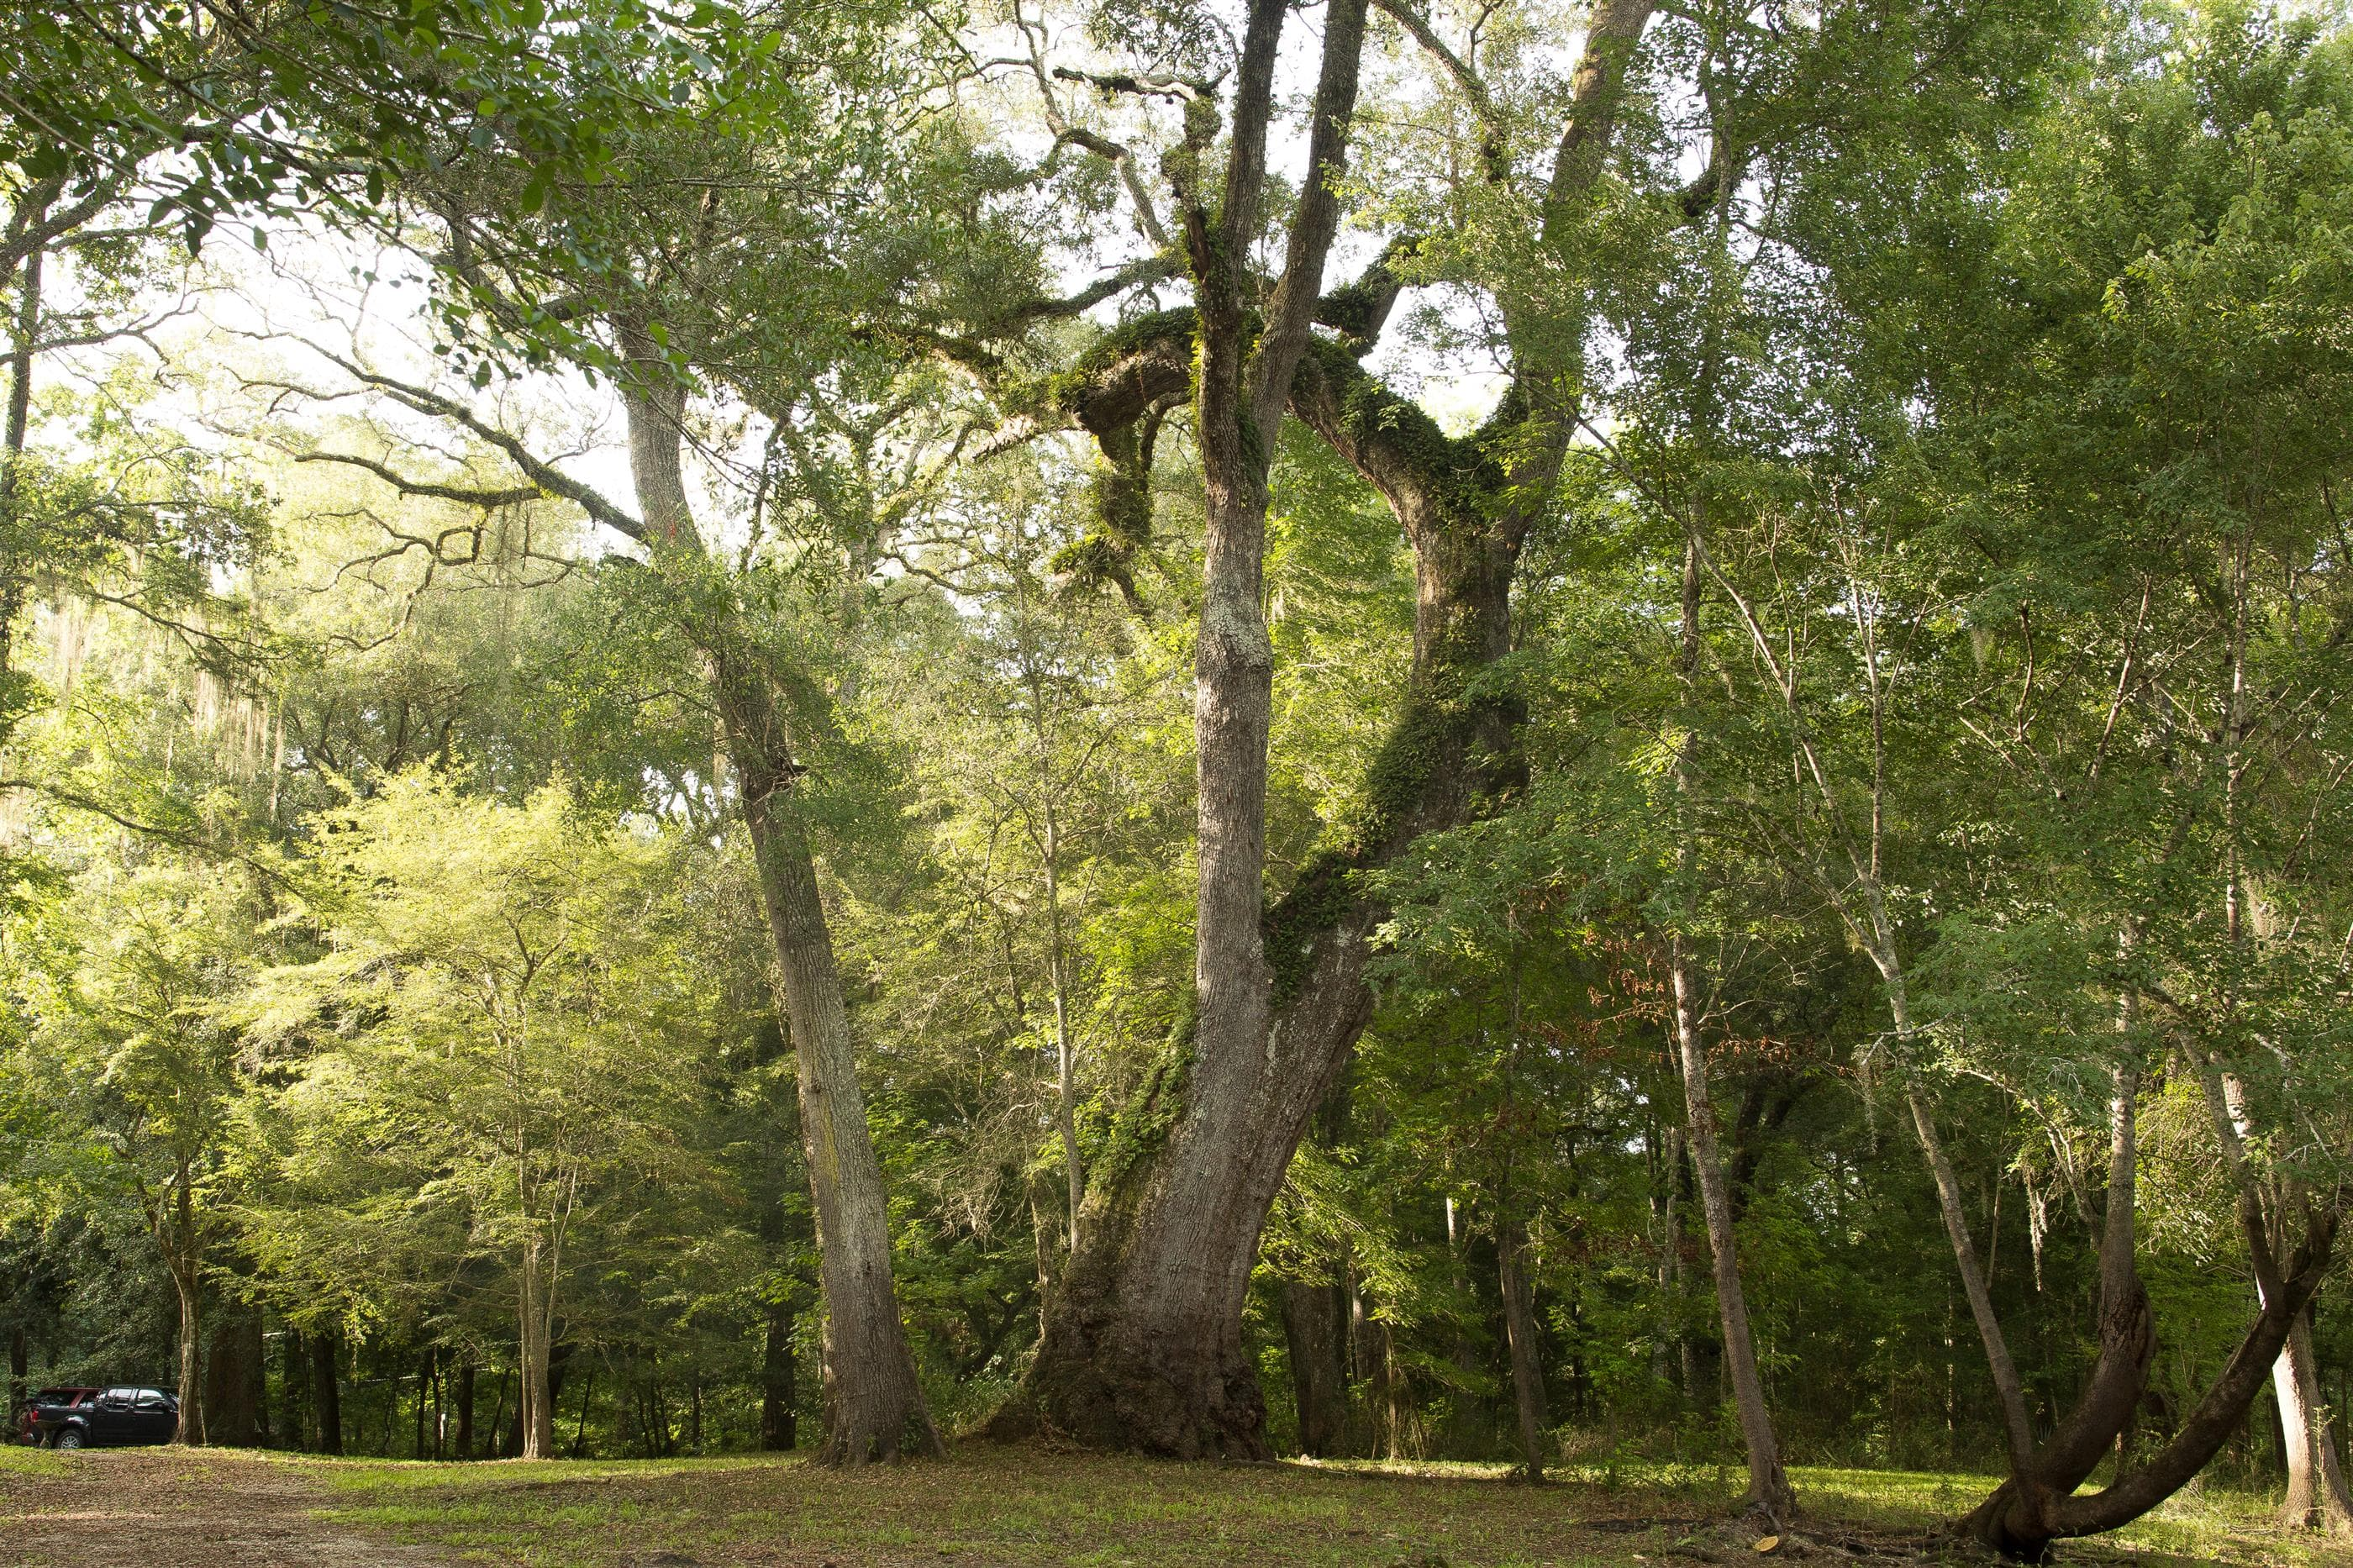 Old water oak tree near Santa Fe River in Suwannee County